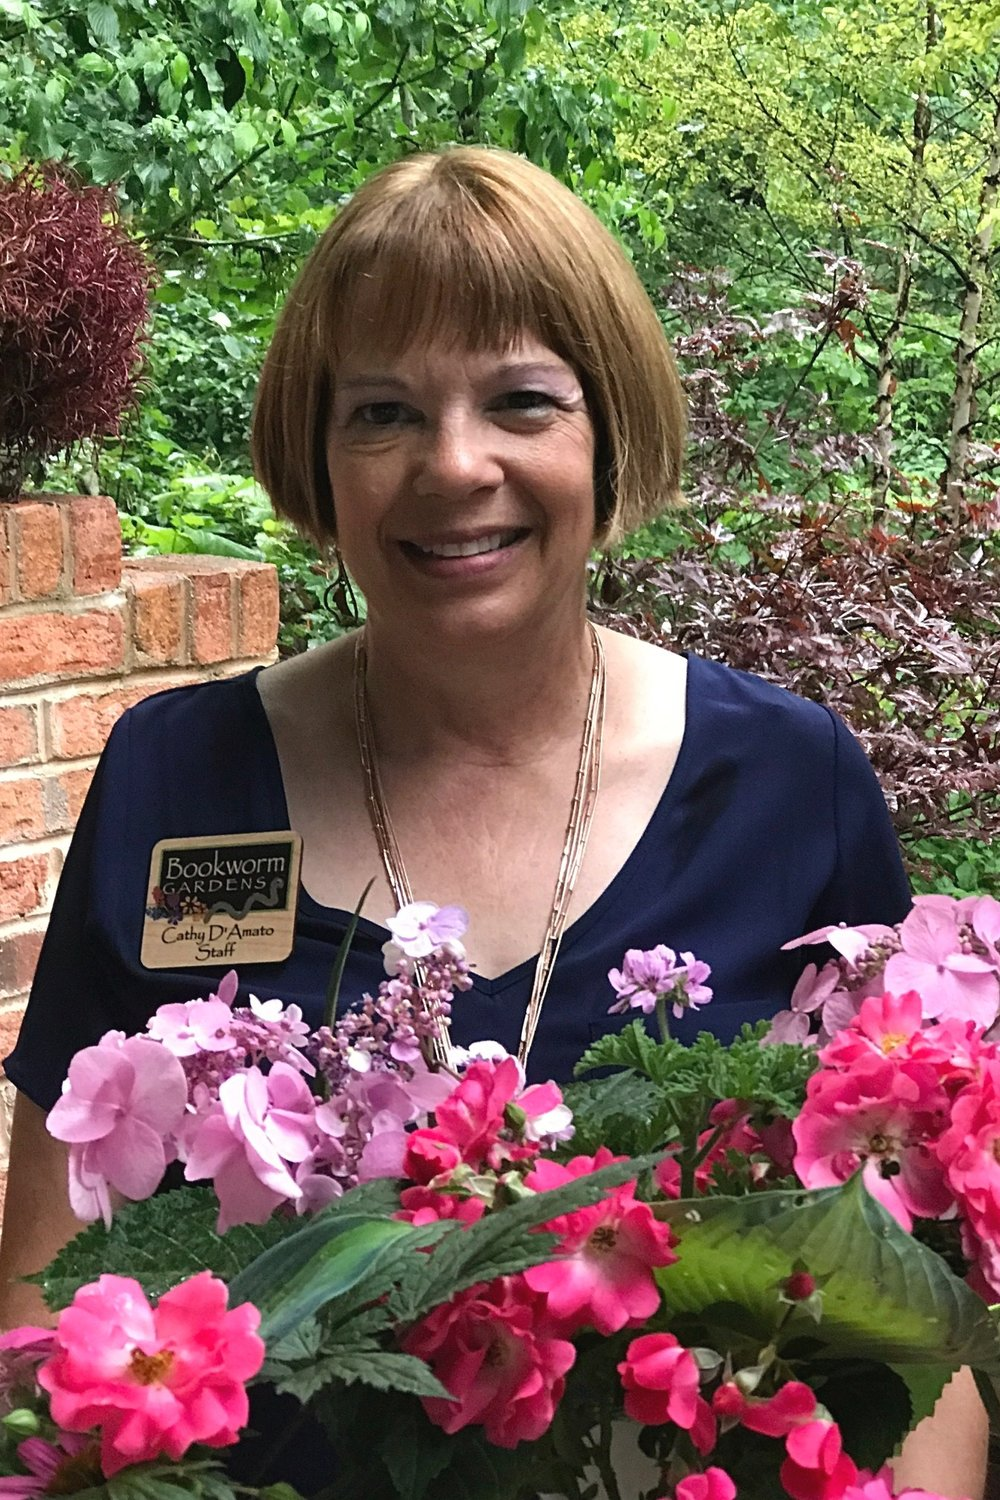 Cathy D'Amato, Education Specialist & Tours and Rentals Coordinator